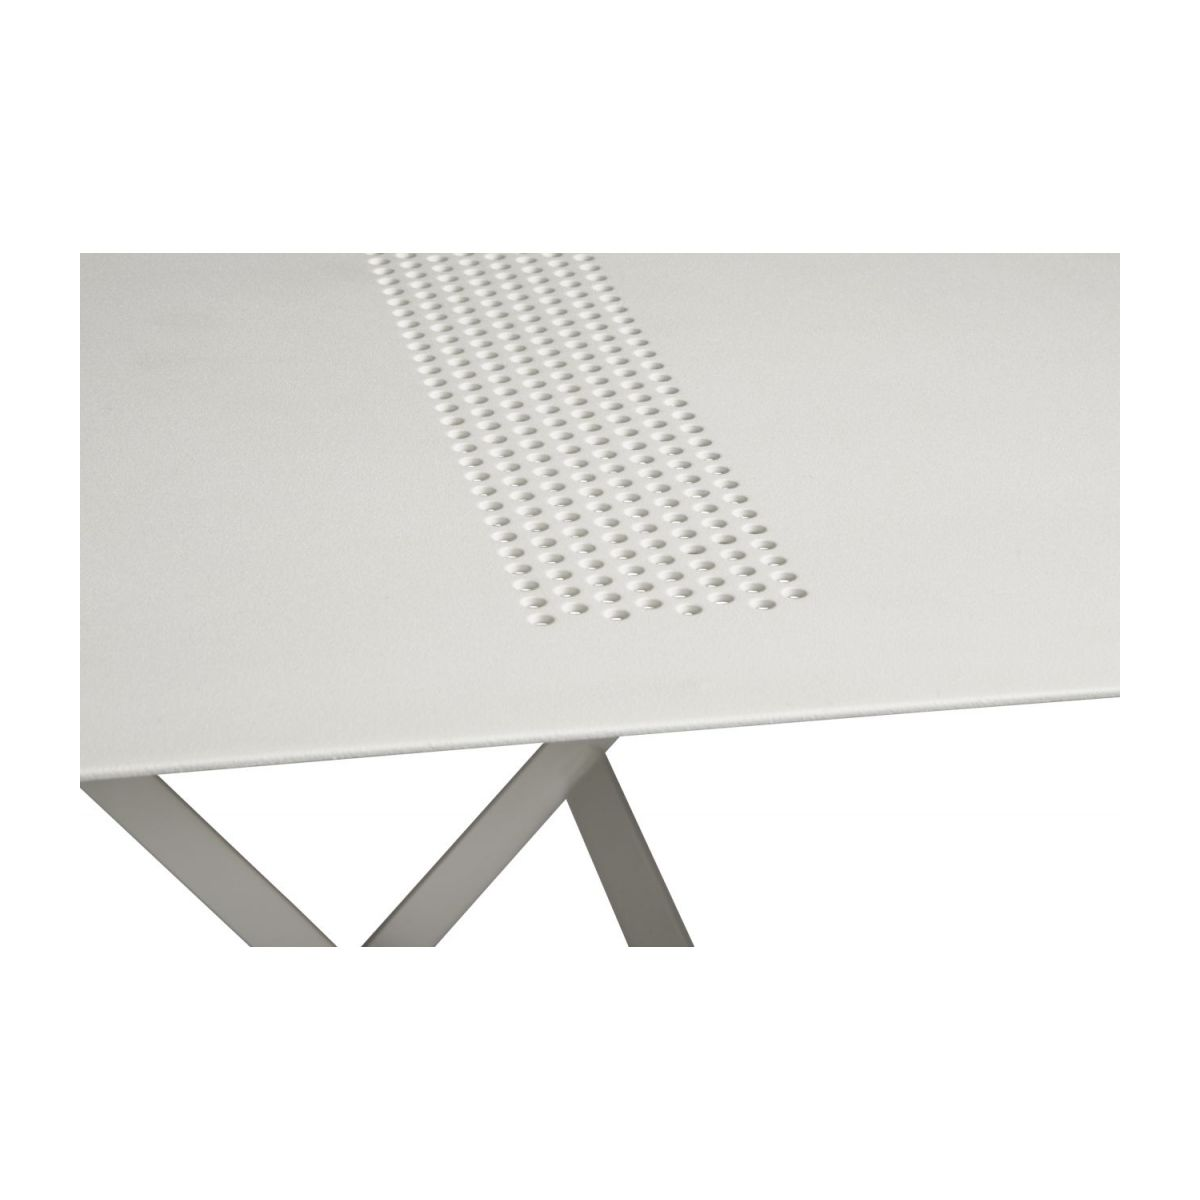 Folding table made of metal, white n°7